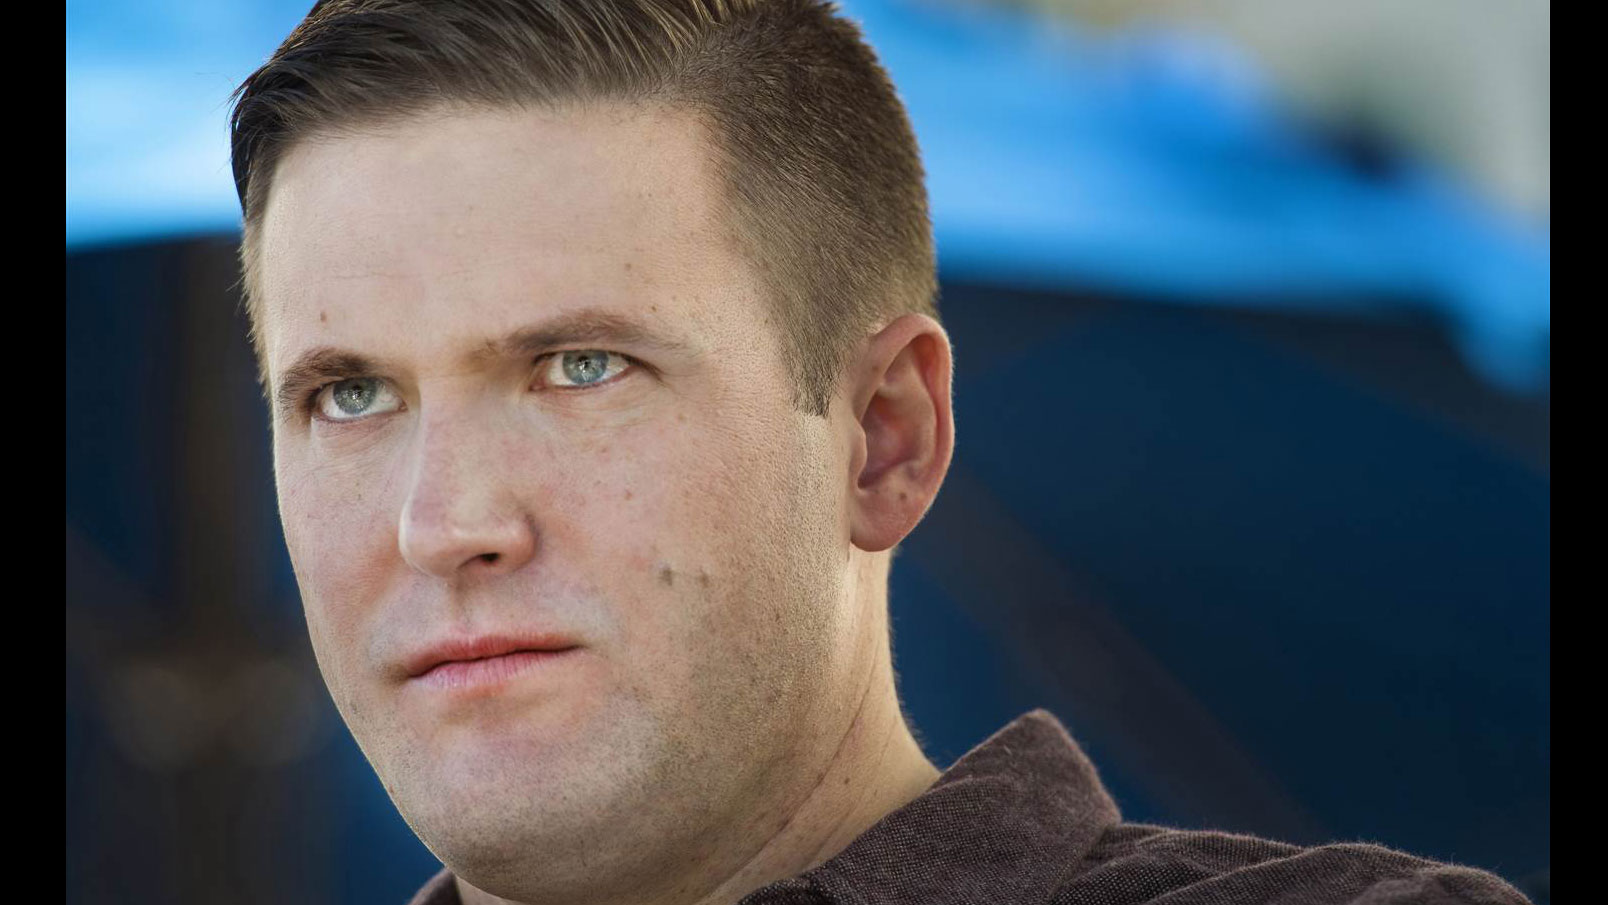 Richard Spencer, president of the National Policy Institute